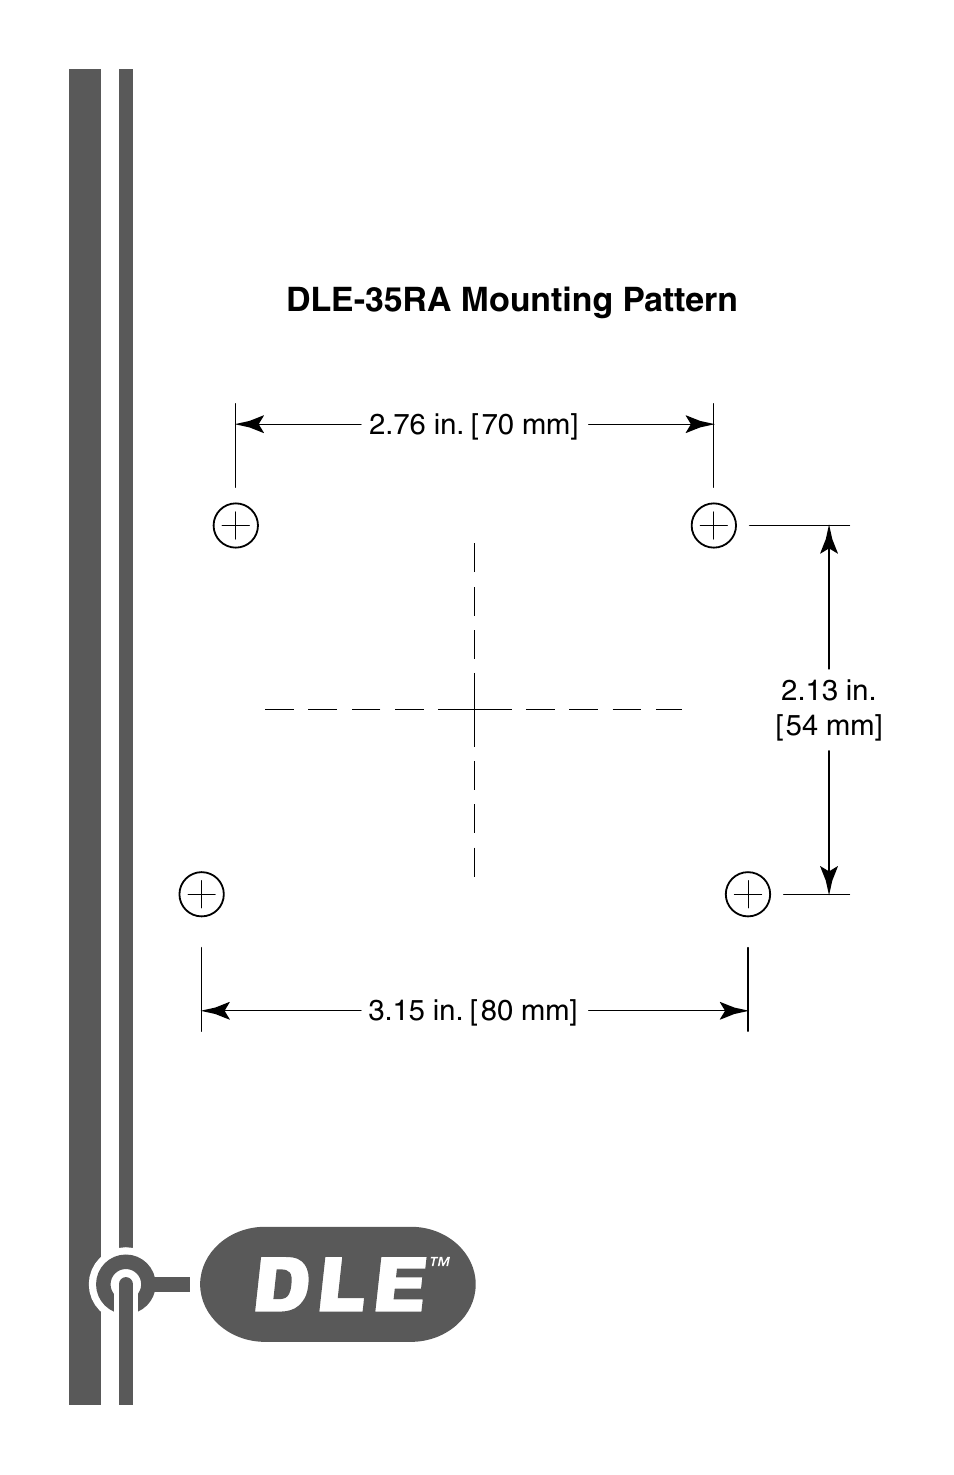 Dle35ra mounting pattern   DLE 35RA User Manual   Page 24